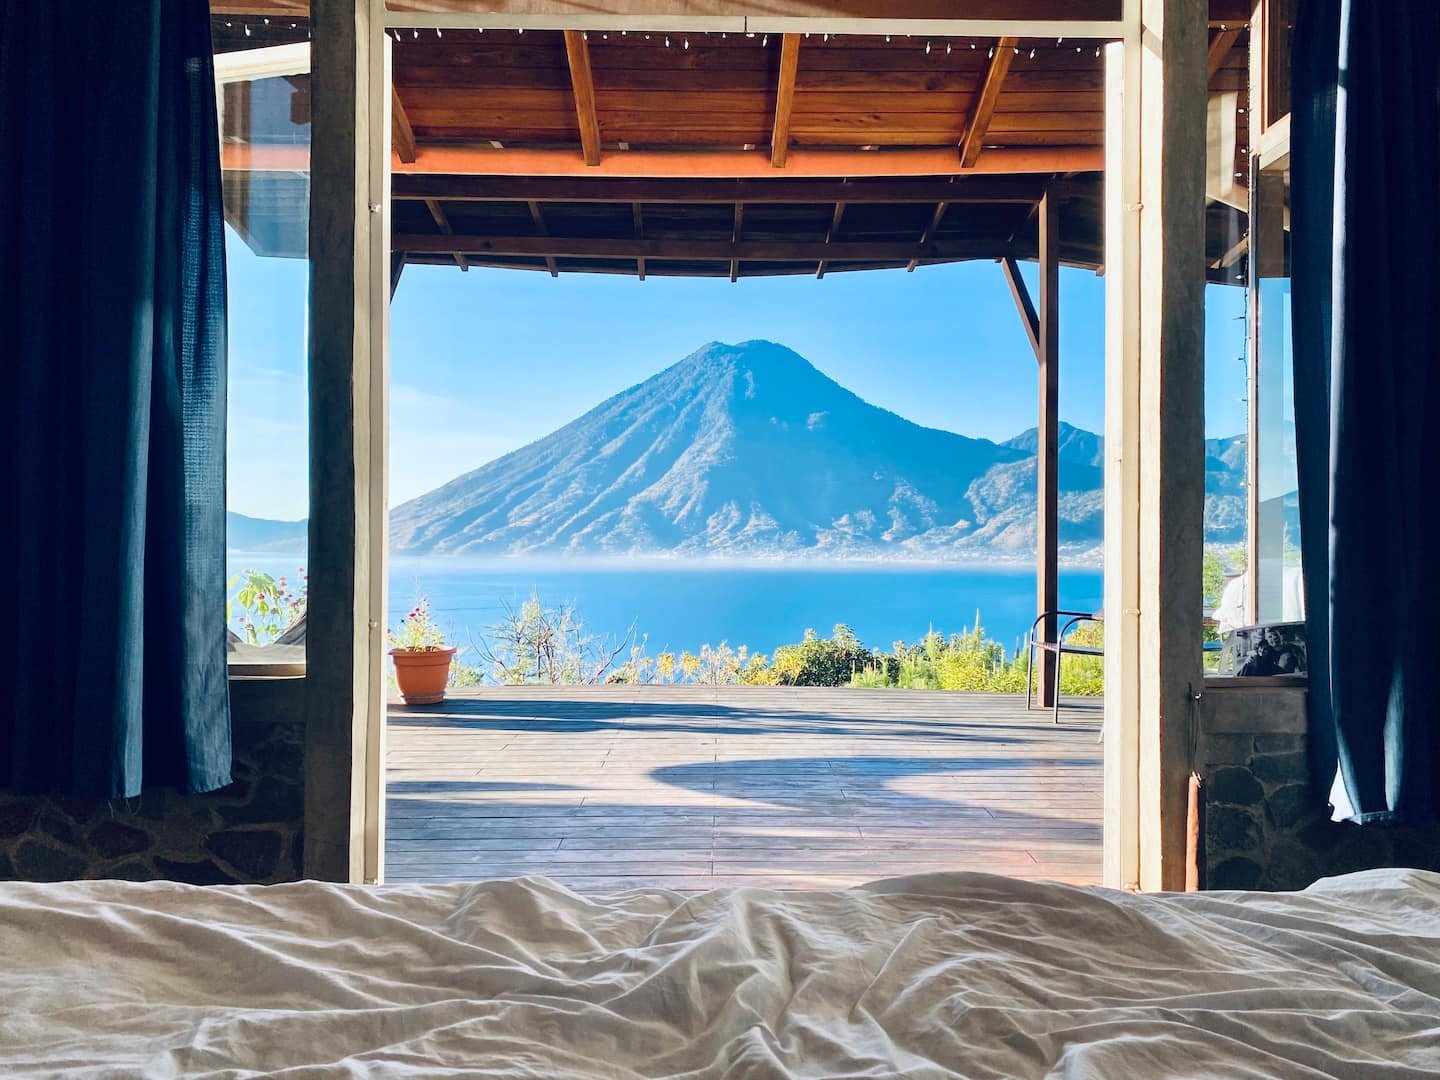 Lake view lodge most popular Airbnb homes